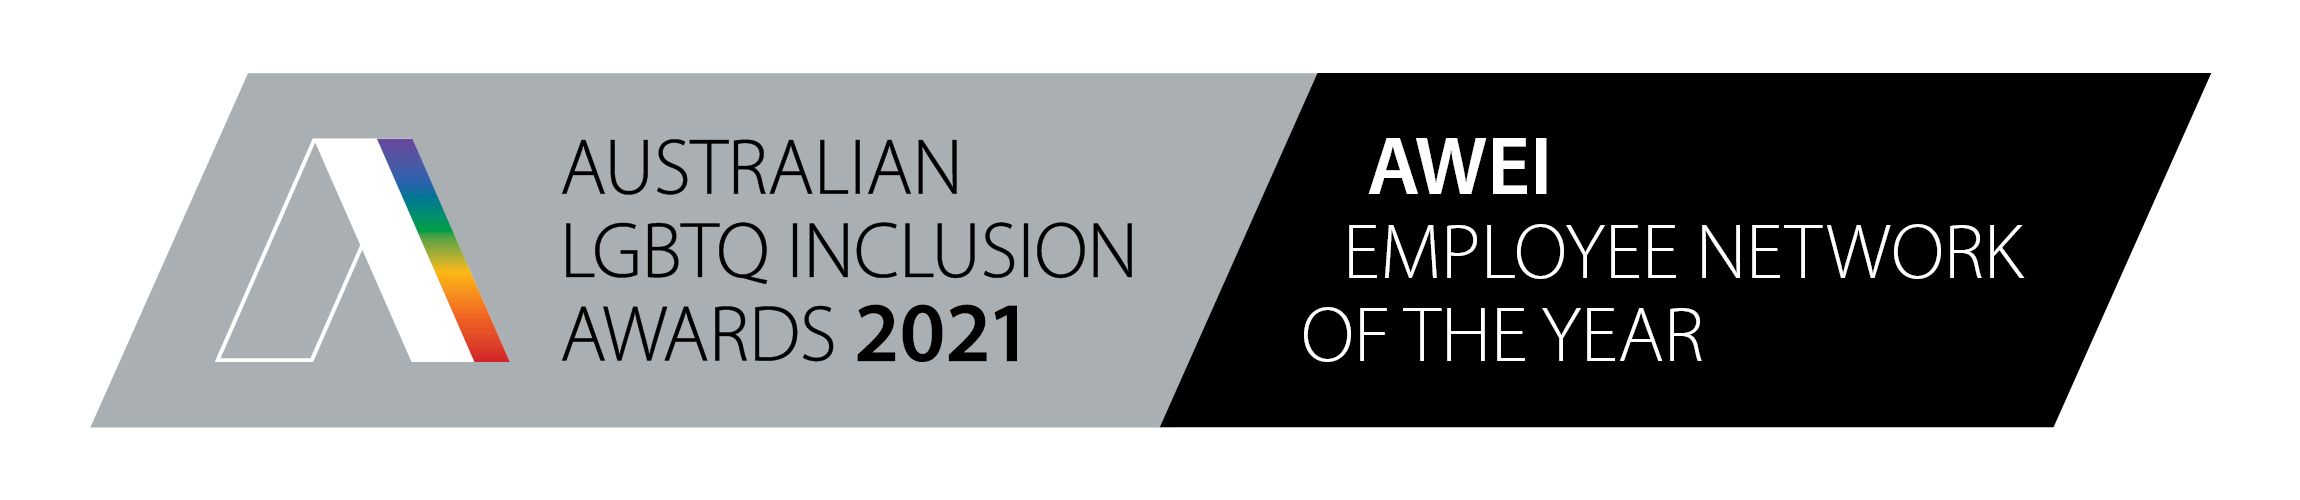 Australian LGBTQ Inclusion Awards 2021 – AWEI Employee Network of the Year